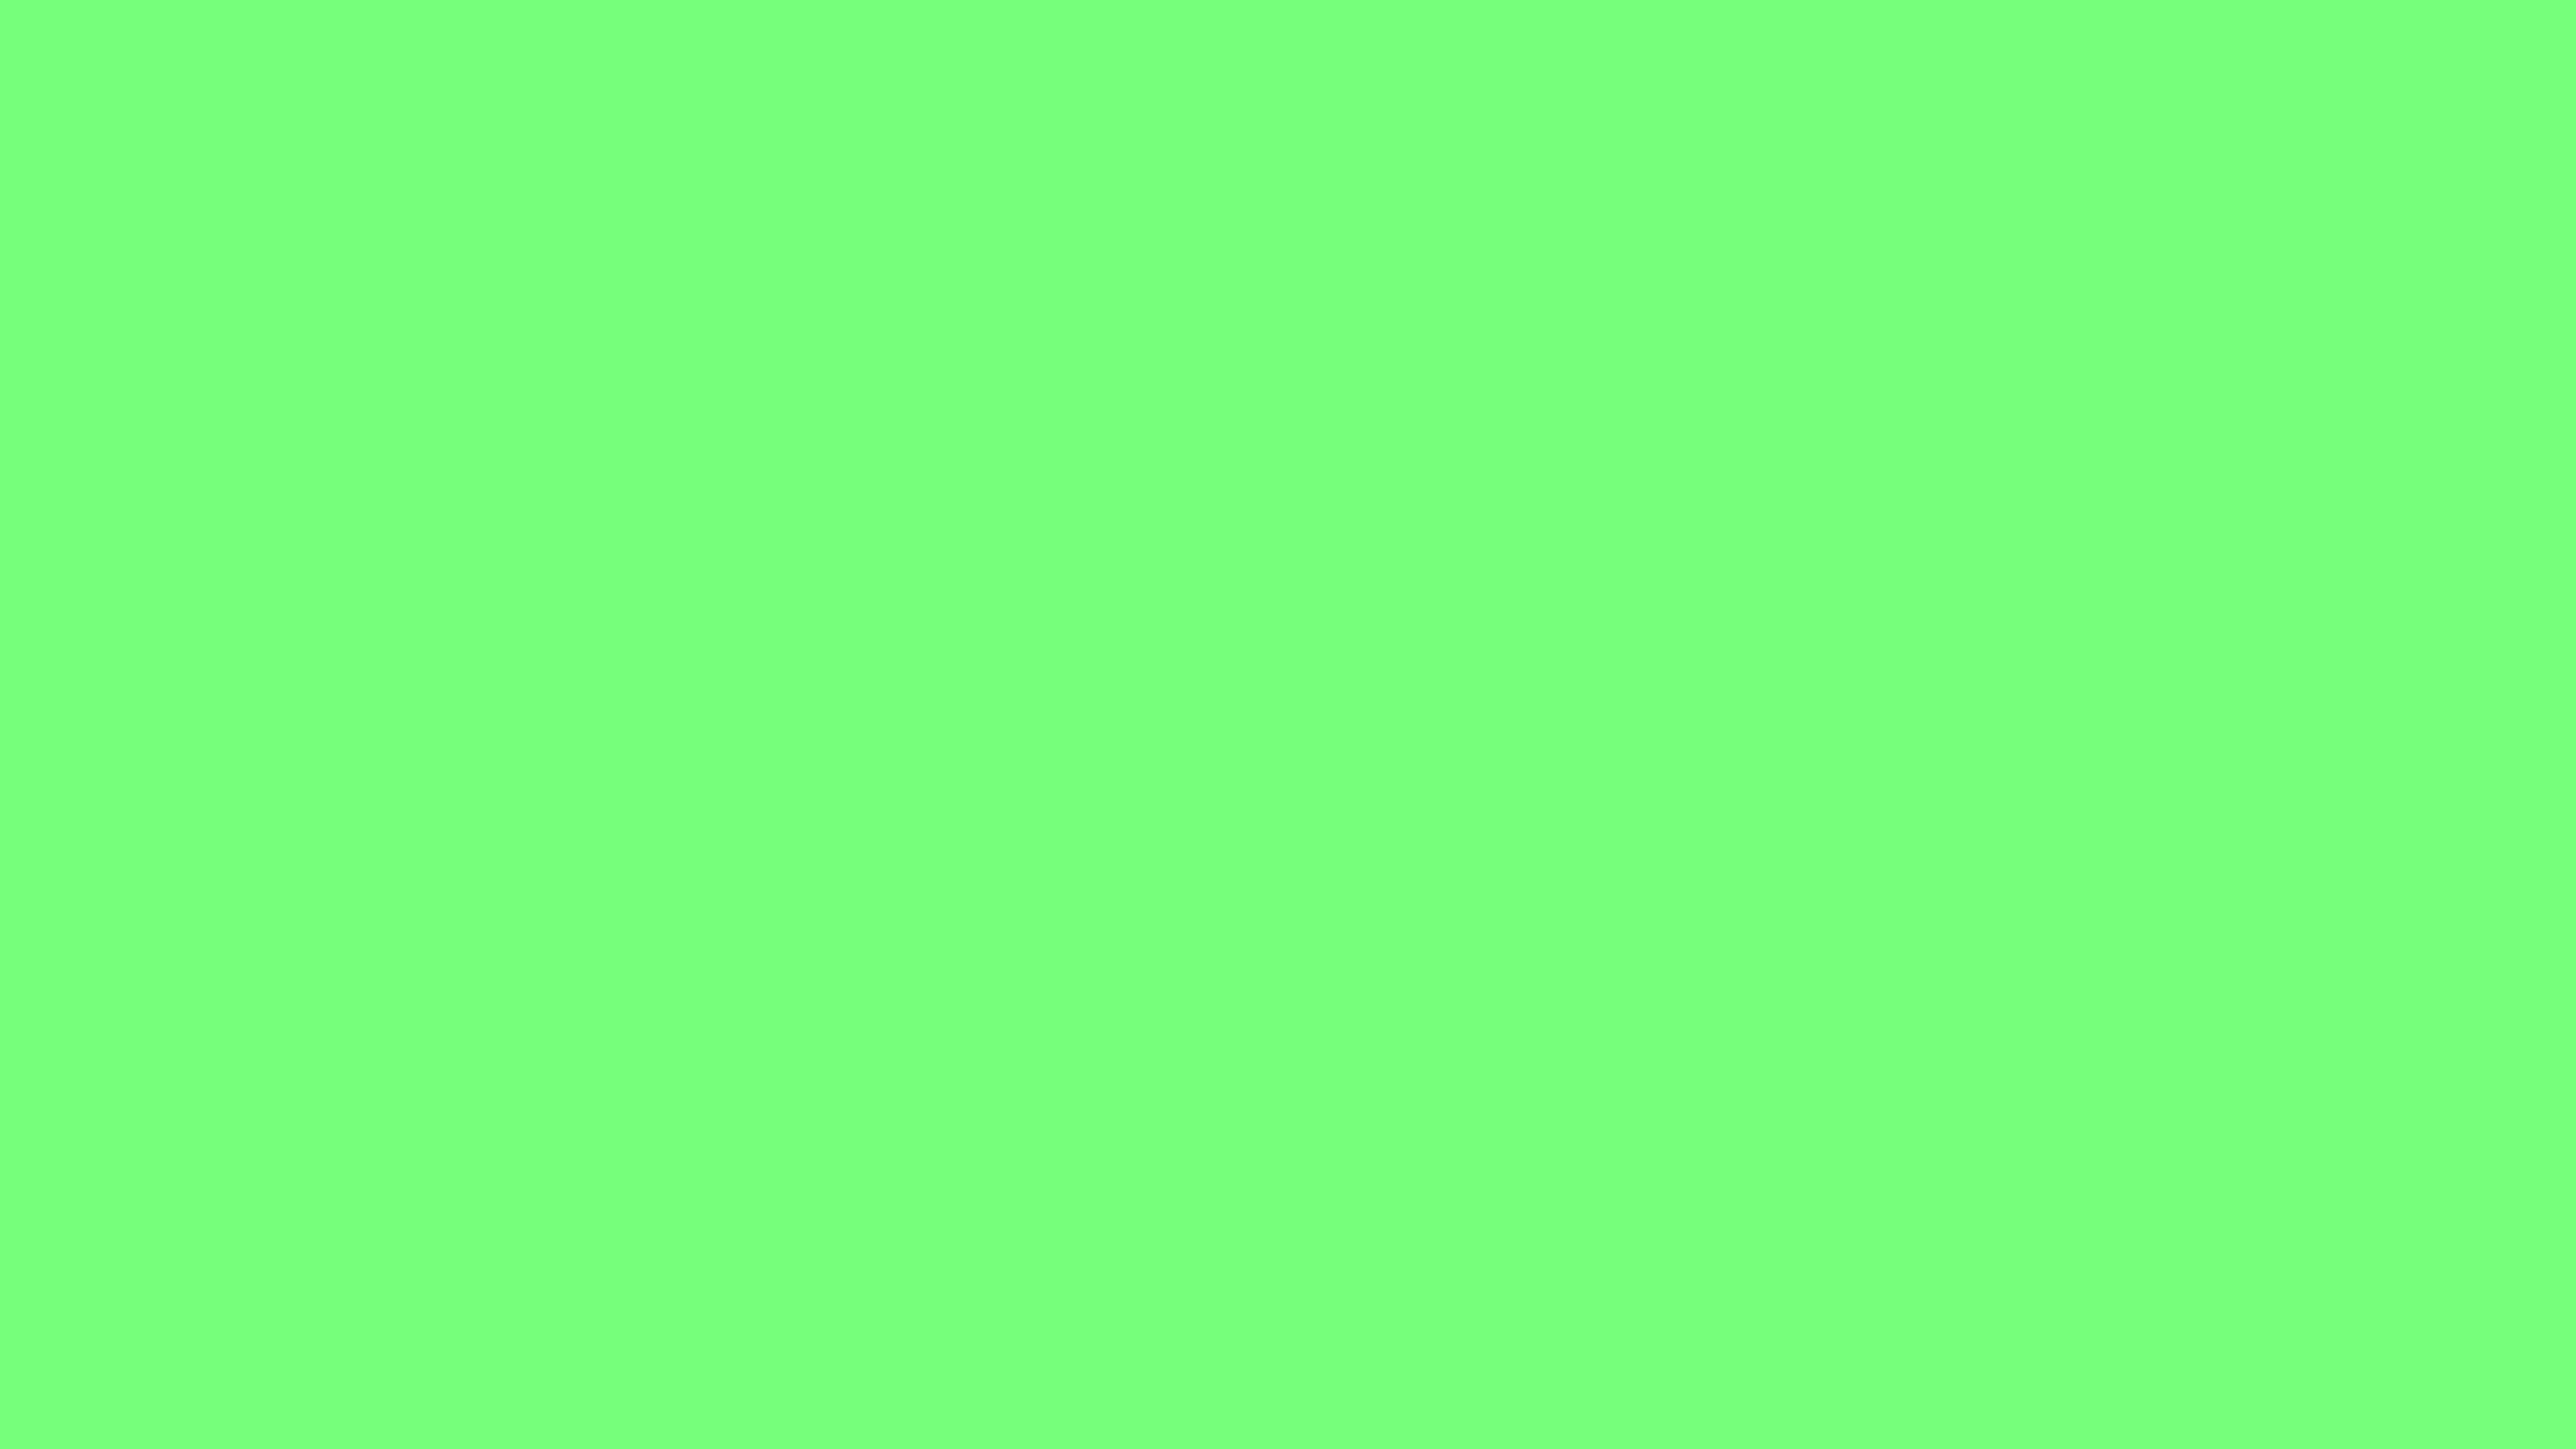 3840x2160 Screamin Green Solid Color Background